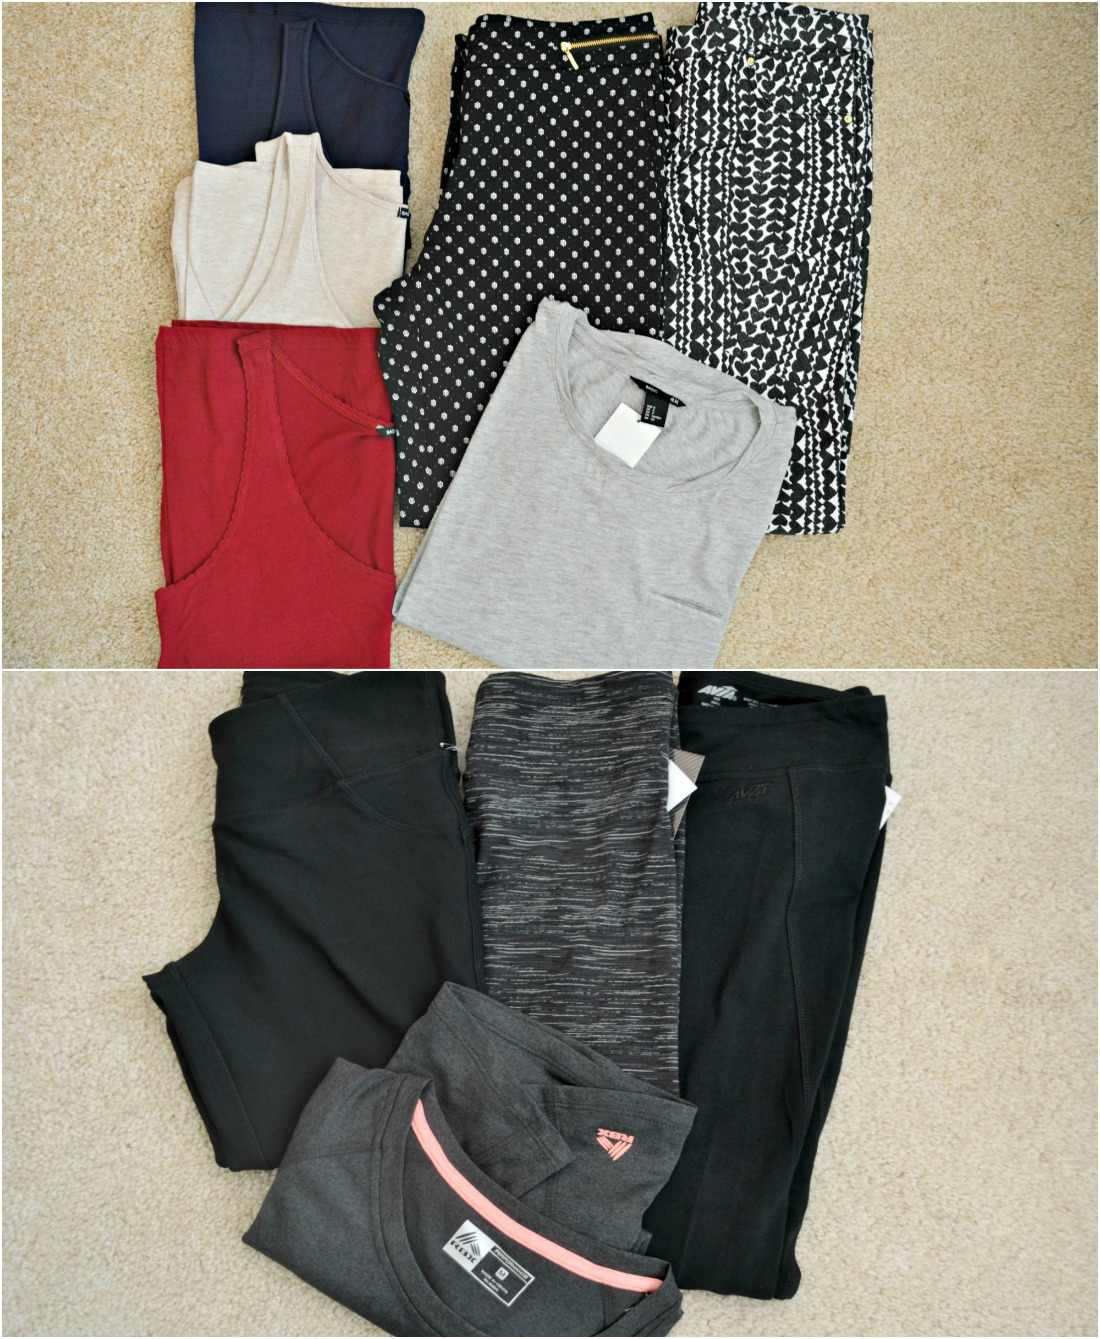 H&M trousers vests running leggings